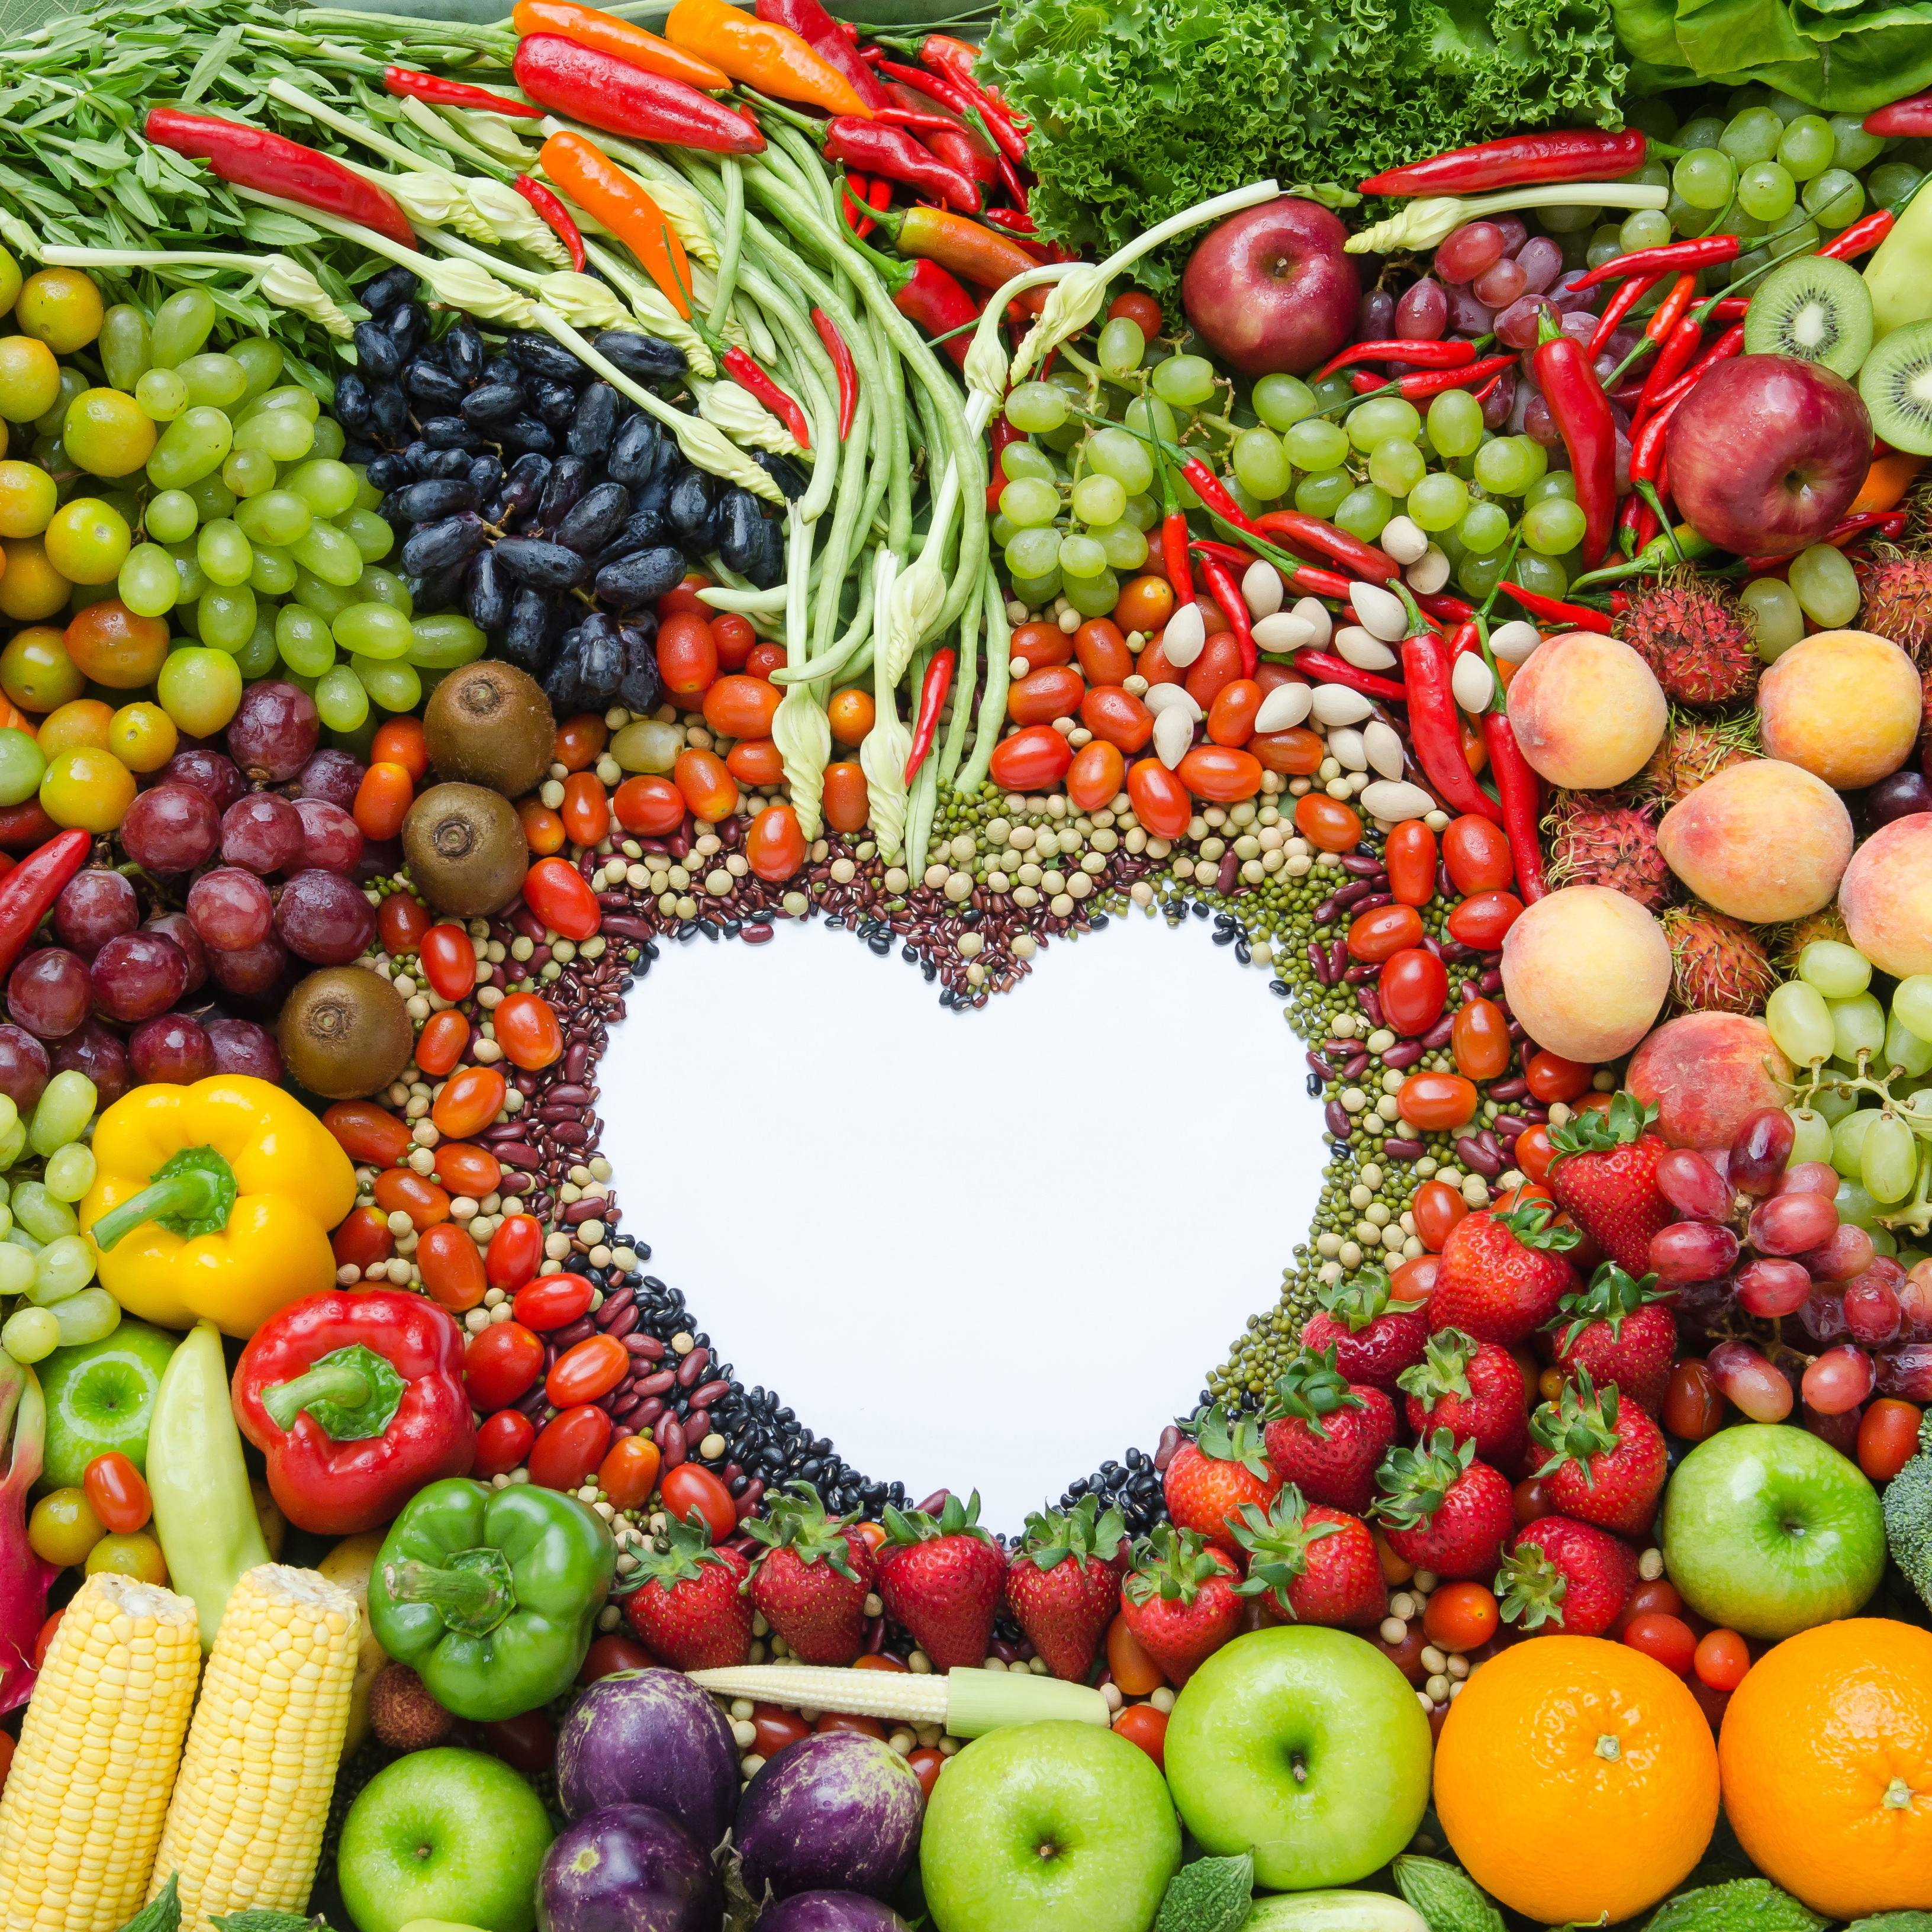 assorted fruits, vegetables and legumes arranged around a blank heart shape